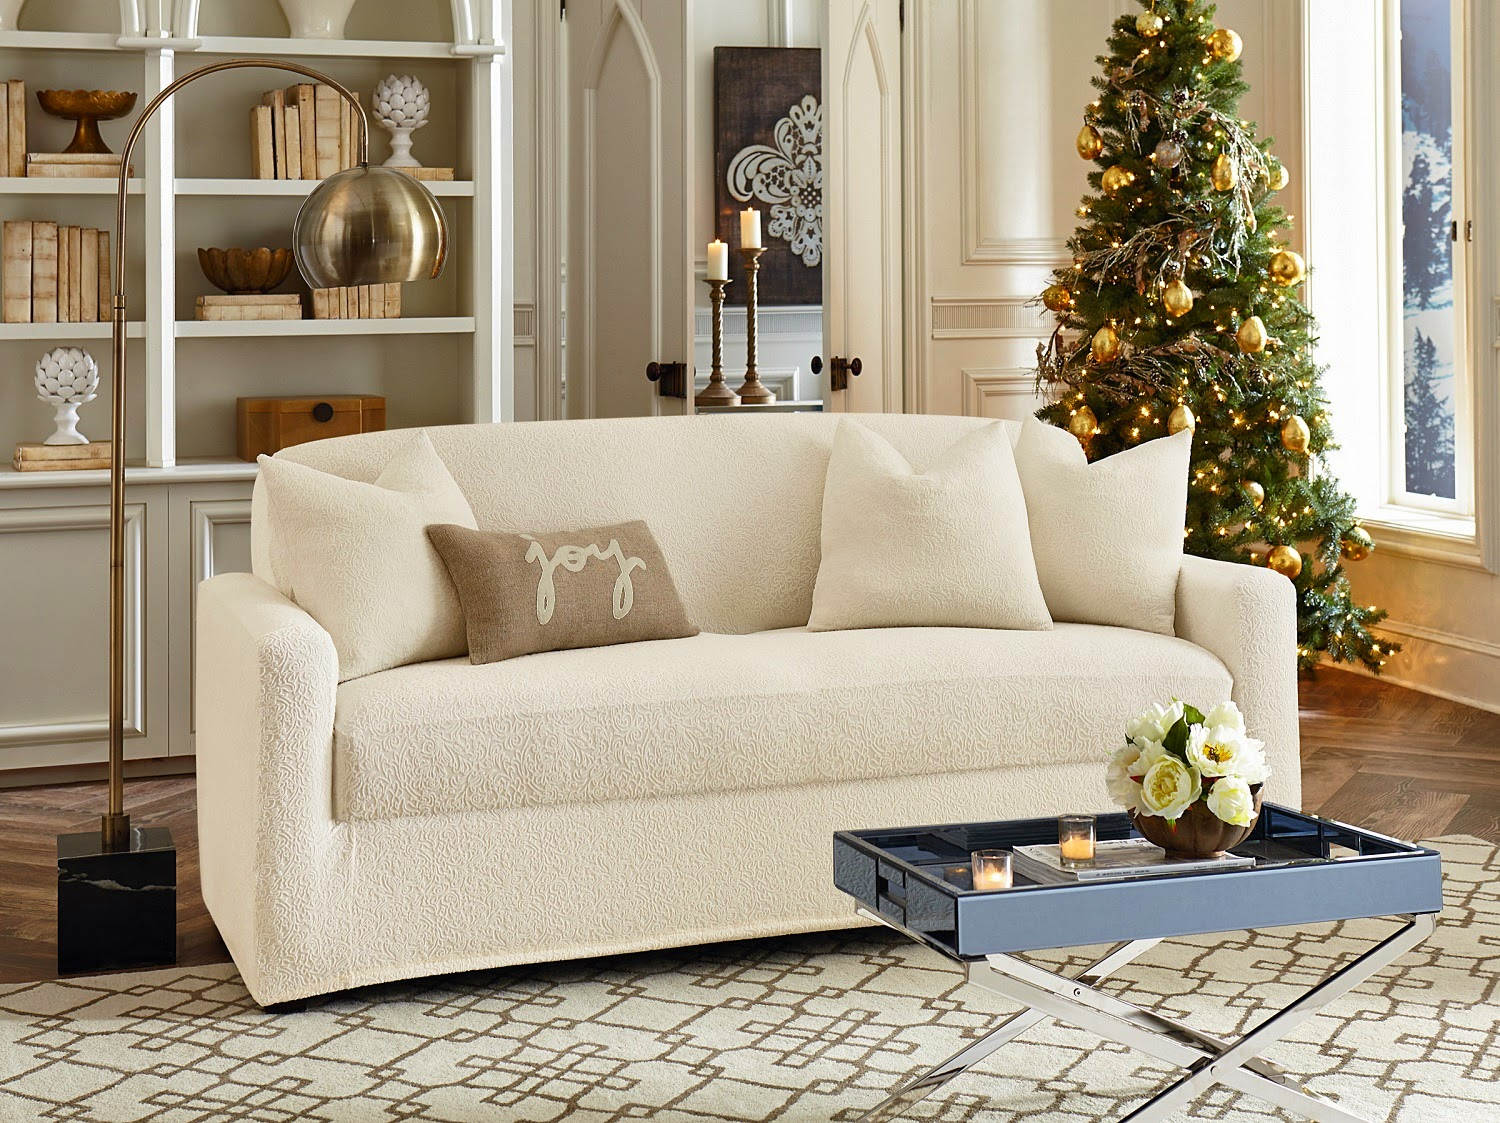 Living Room Chair Slipcovers Sure Fit Slipcovers October 2014